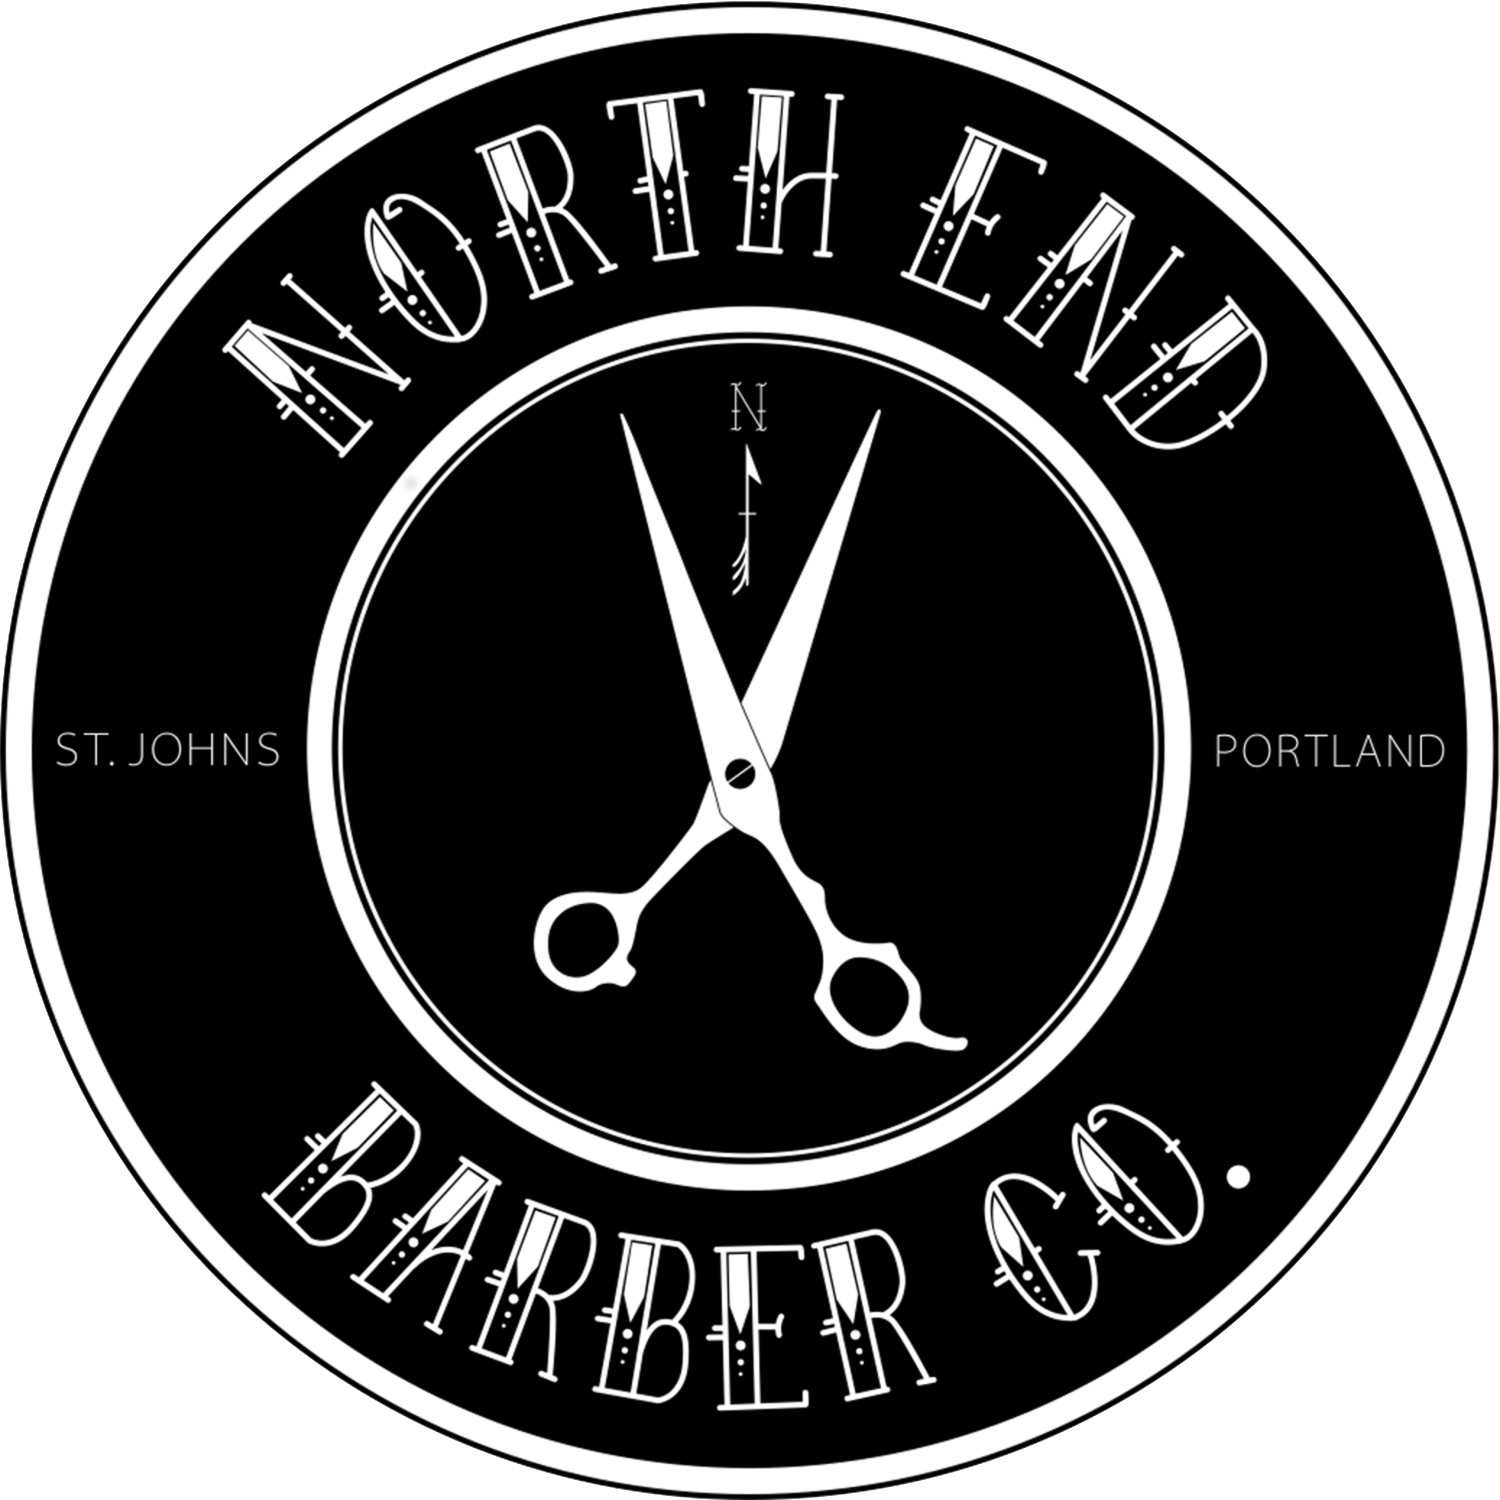 North End Barber Company